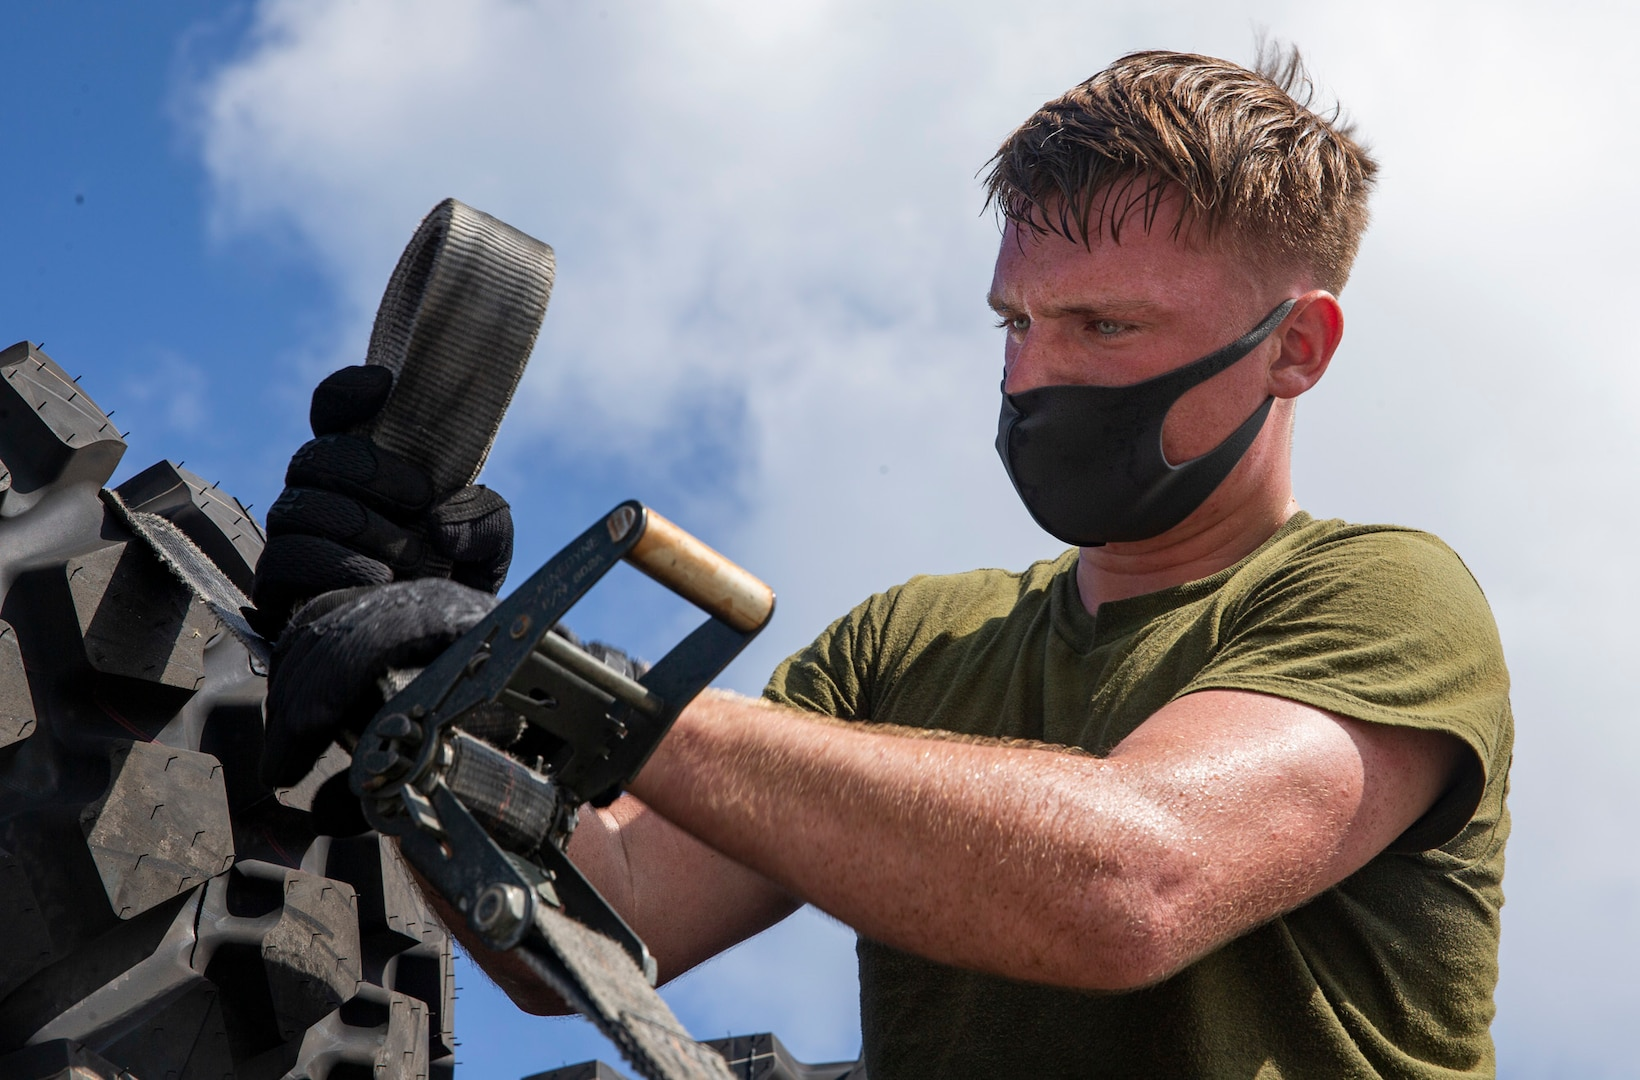 Male wearing a face mask works on a piece of equipment outdoors.